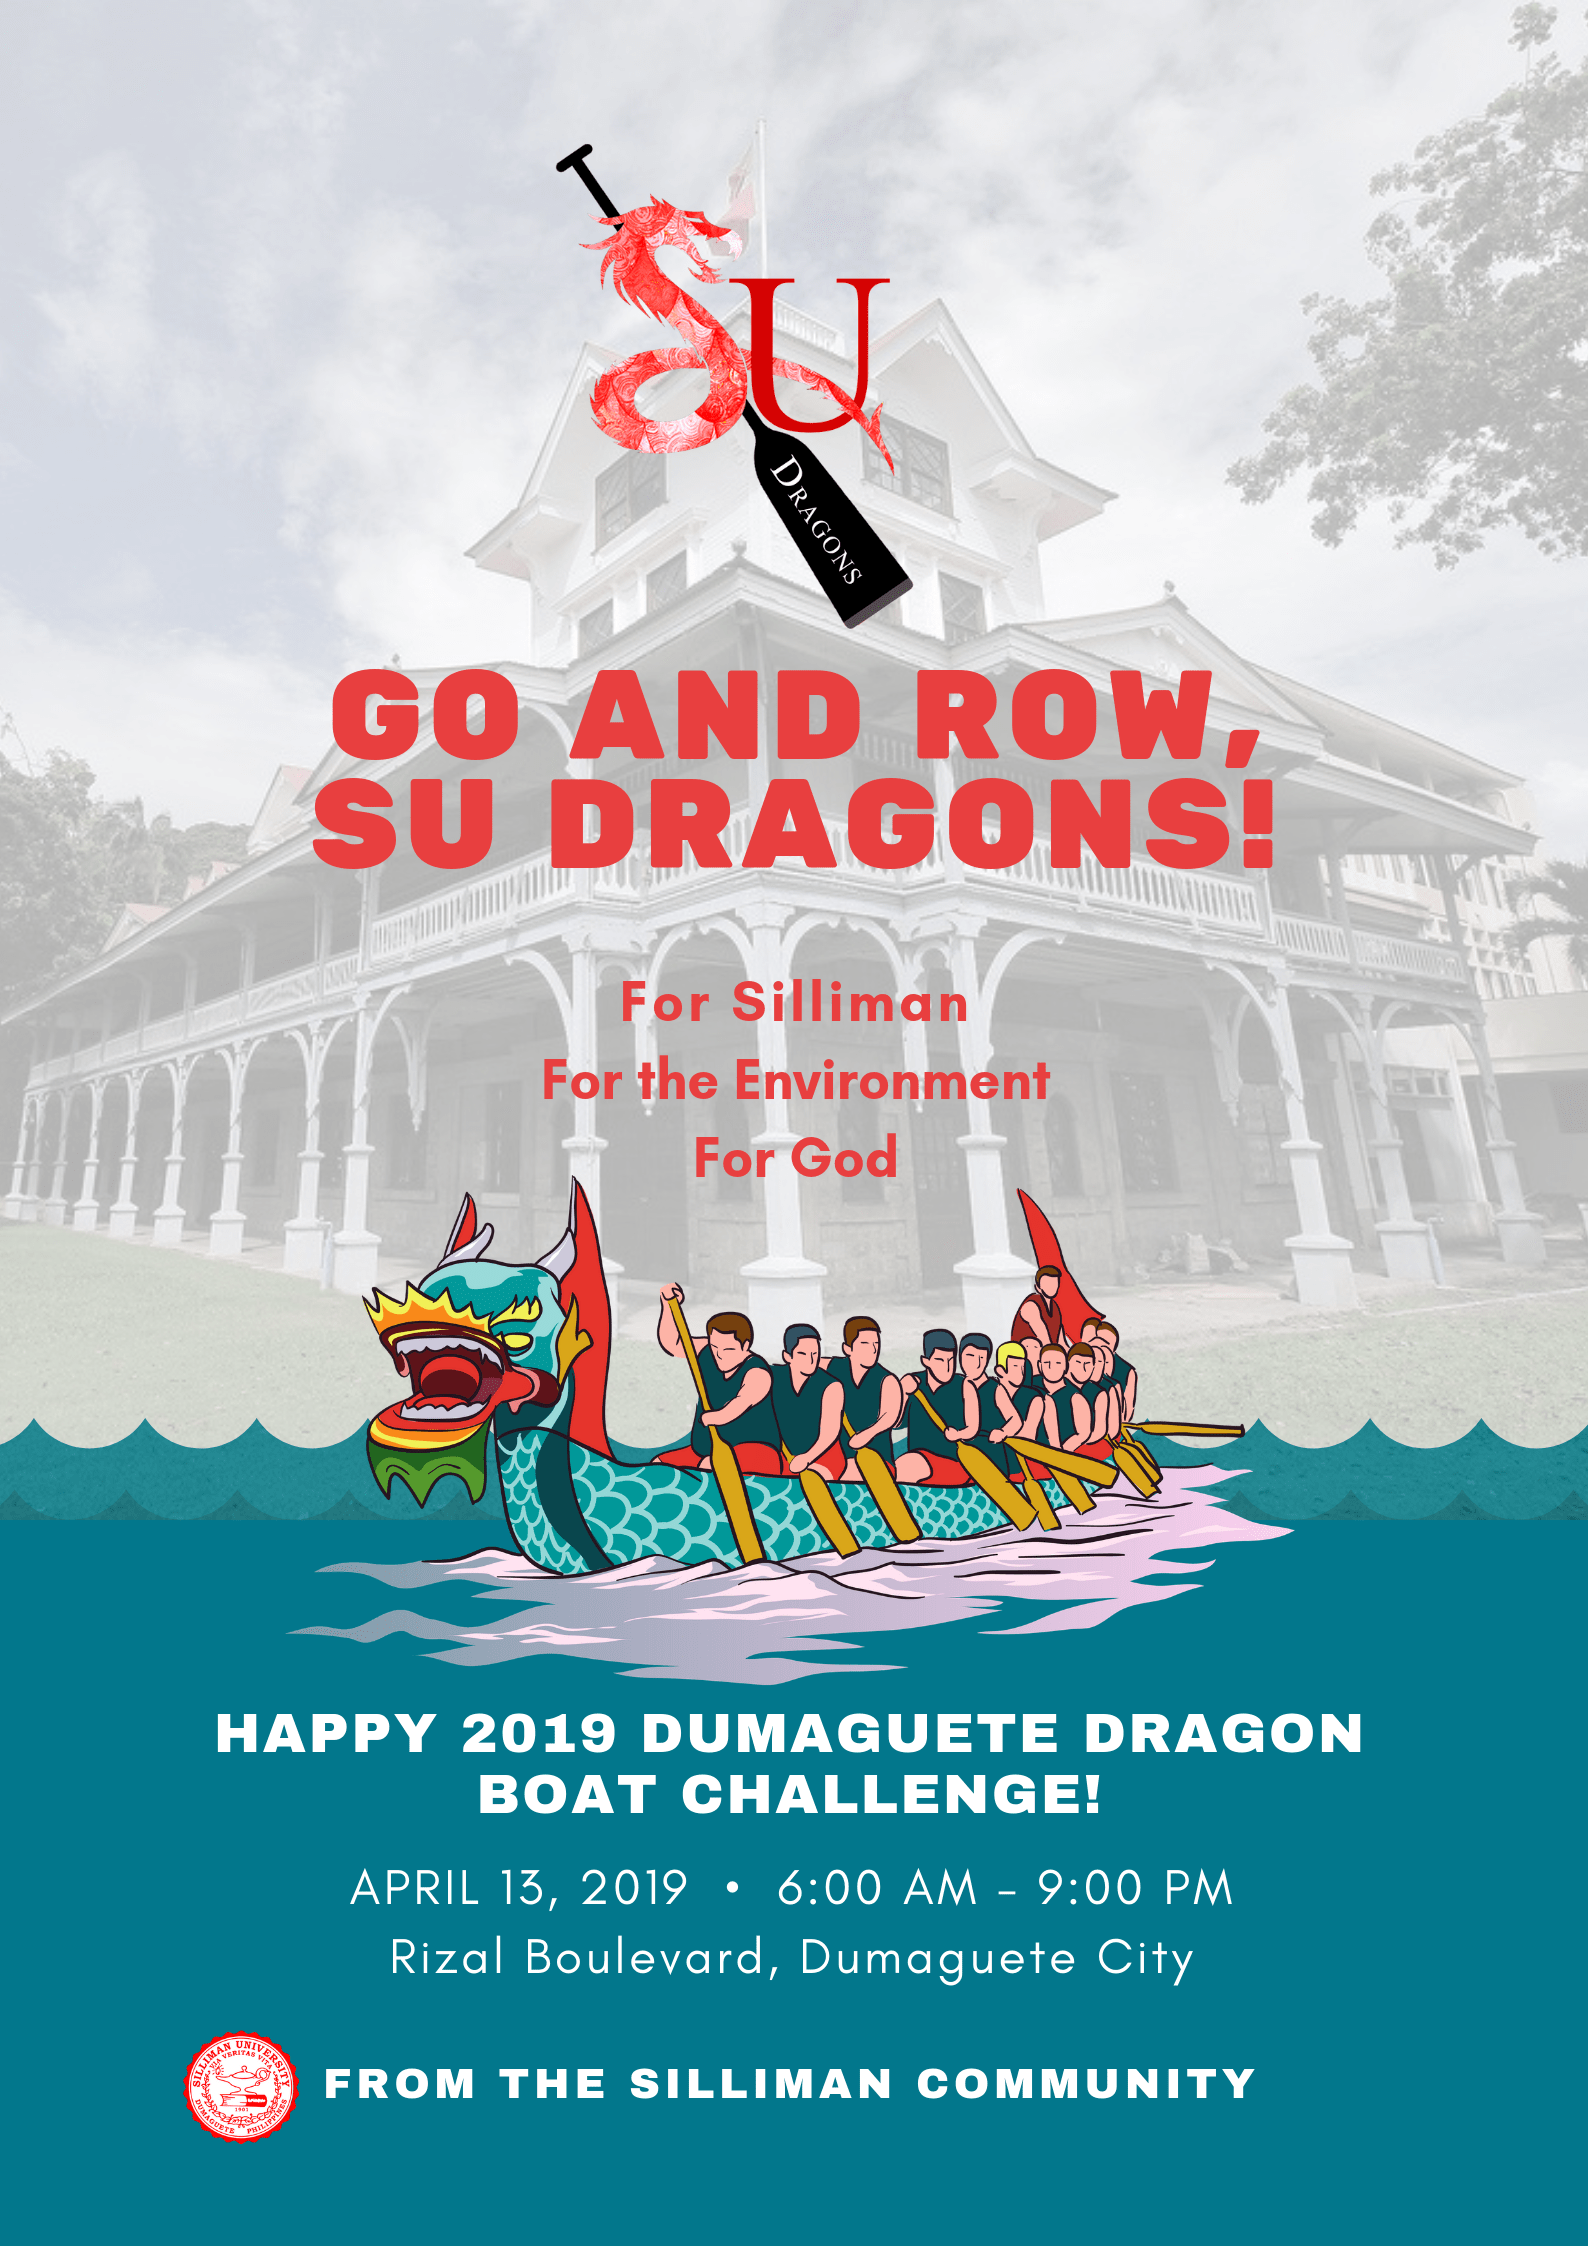 Su Dragons To Participate In Dumaguete Dragon Boat